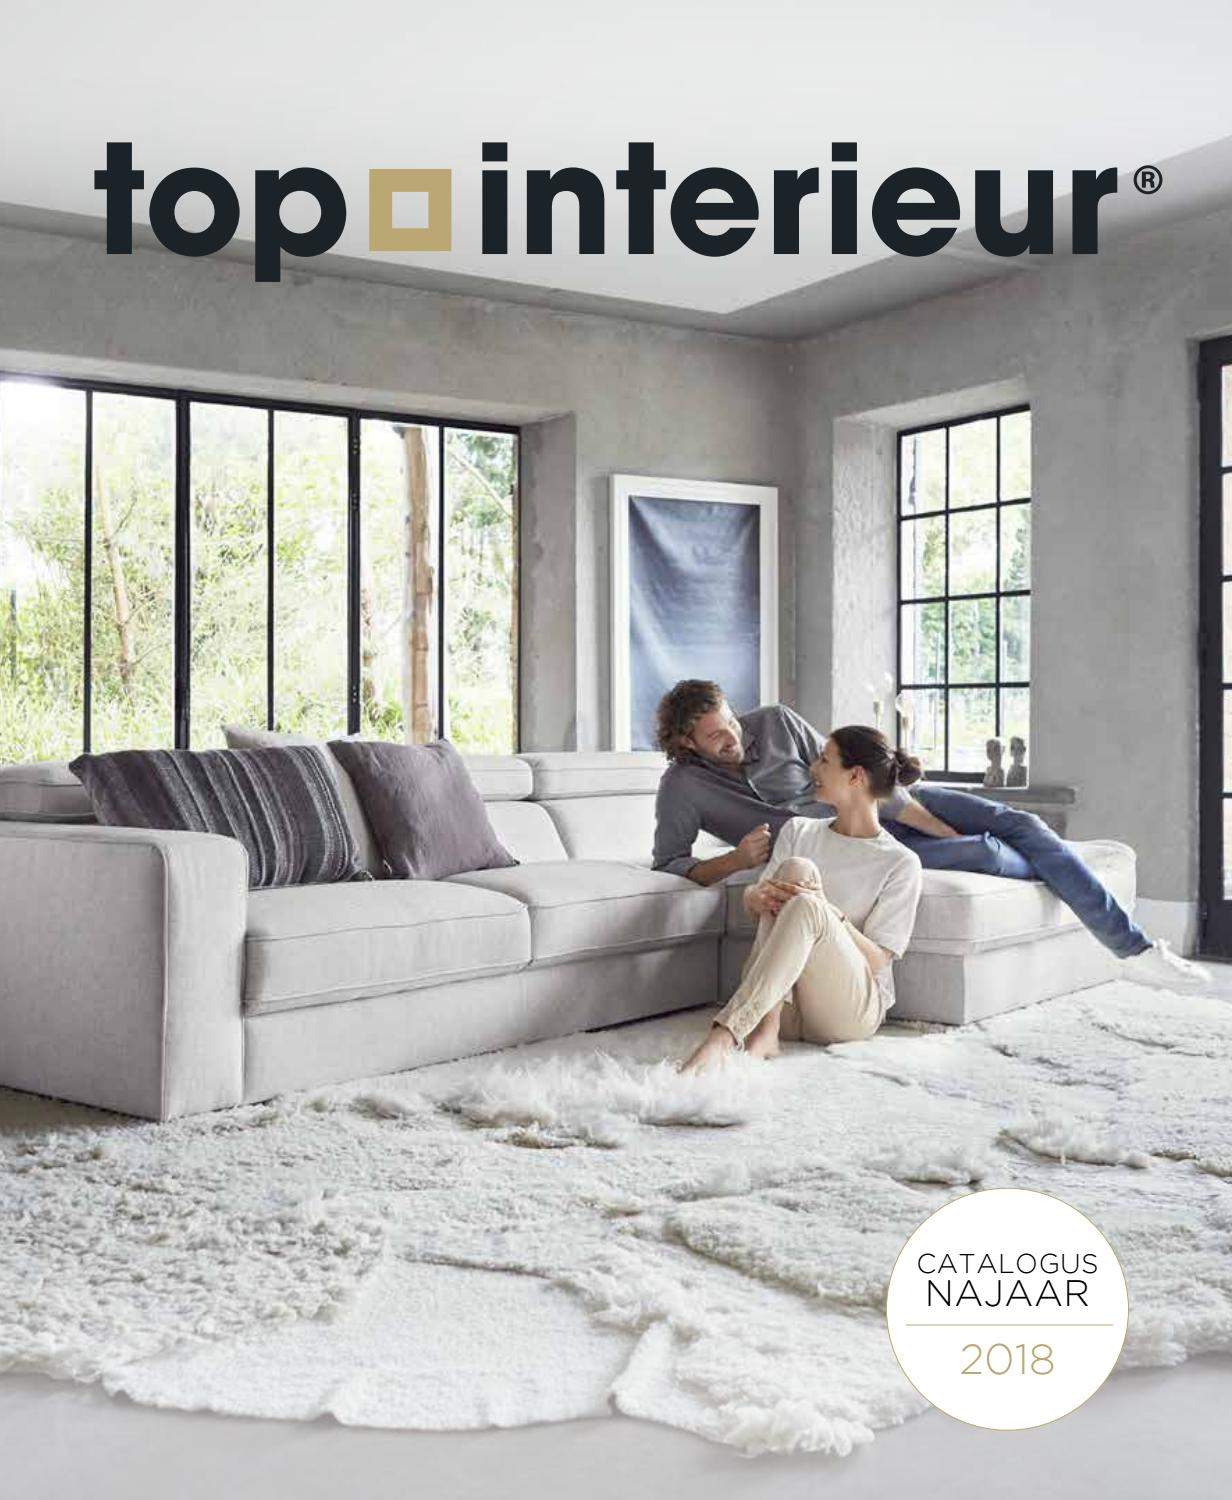 Interieur Design Sint Niklaas Catalogus Top Interieur Massenhoven Najaar 2018 By Topinterieur